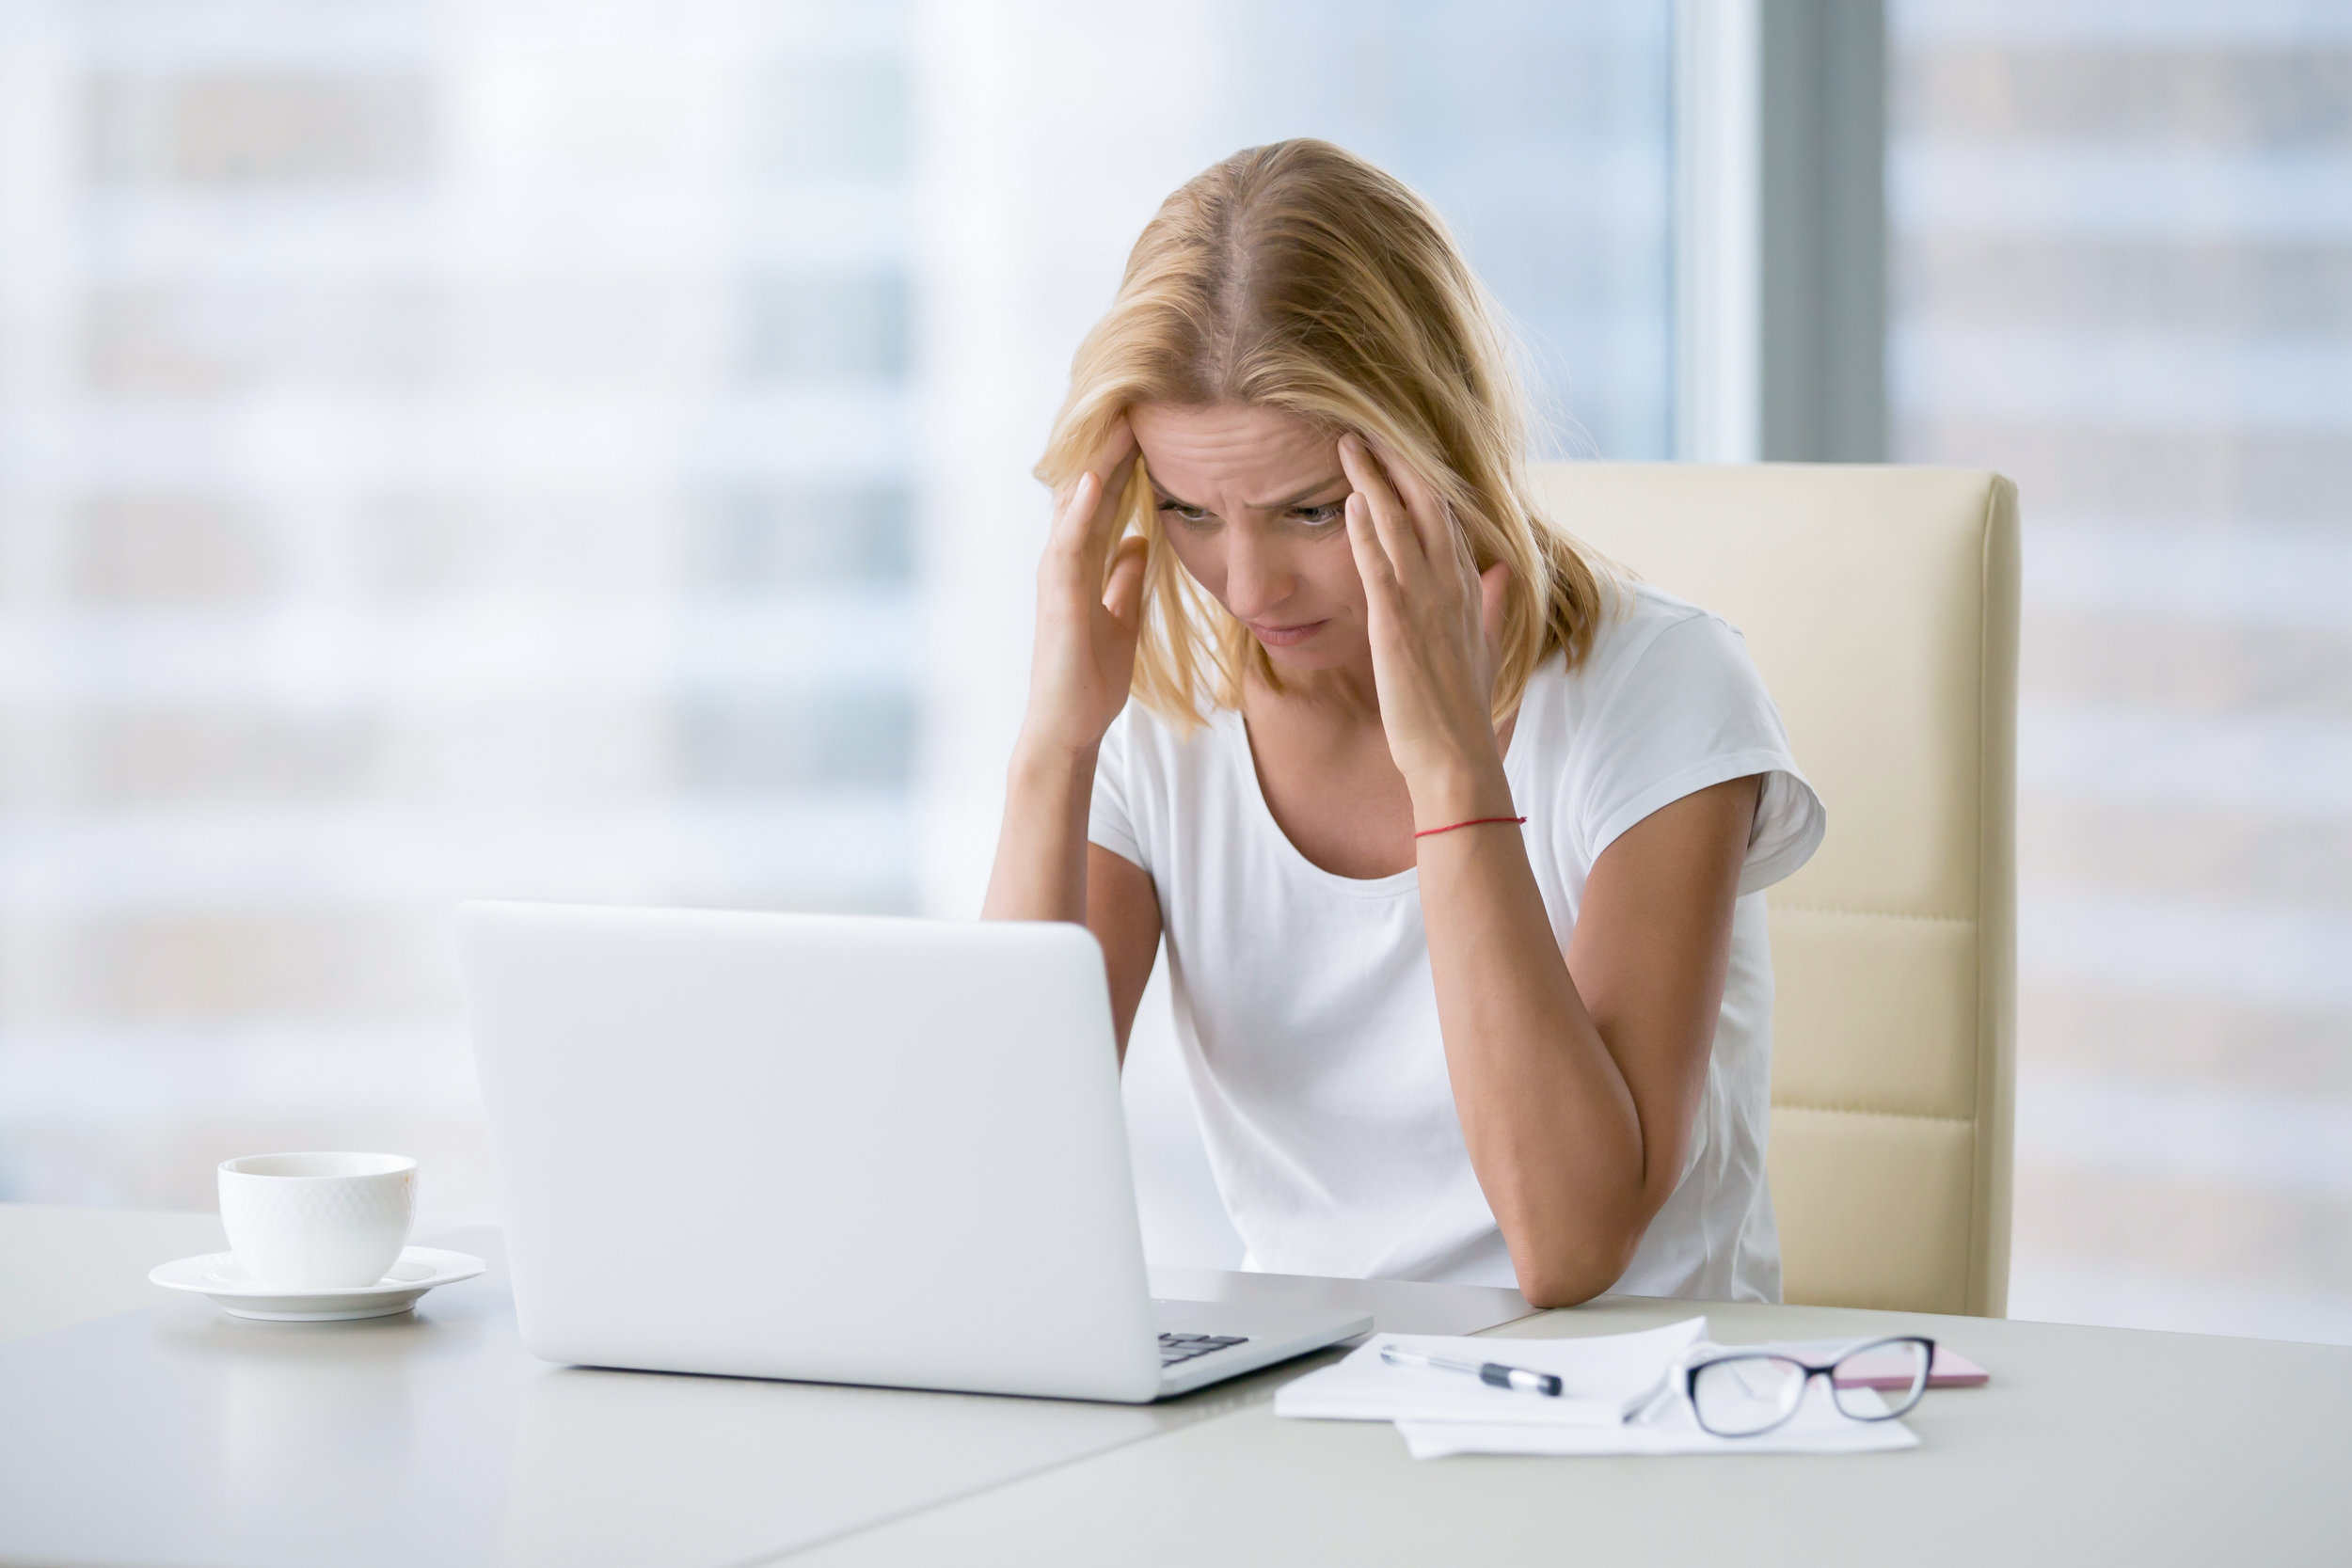 Have you ever stared at your computer screen feeling scattered and unable to focus? You're definitely not alone! One of the most common reasons is chronic stress.